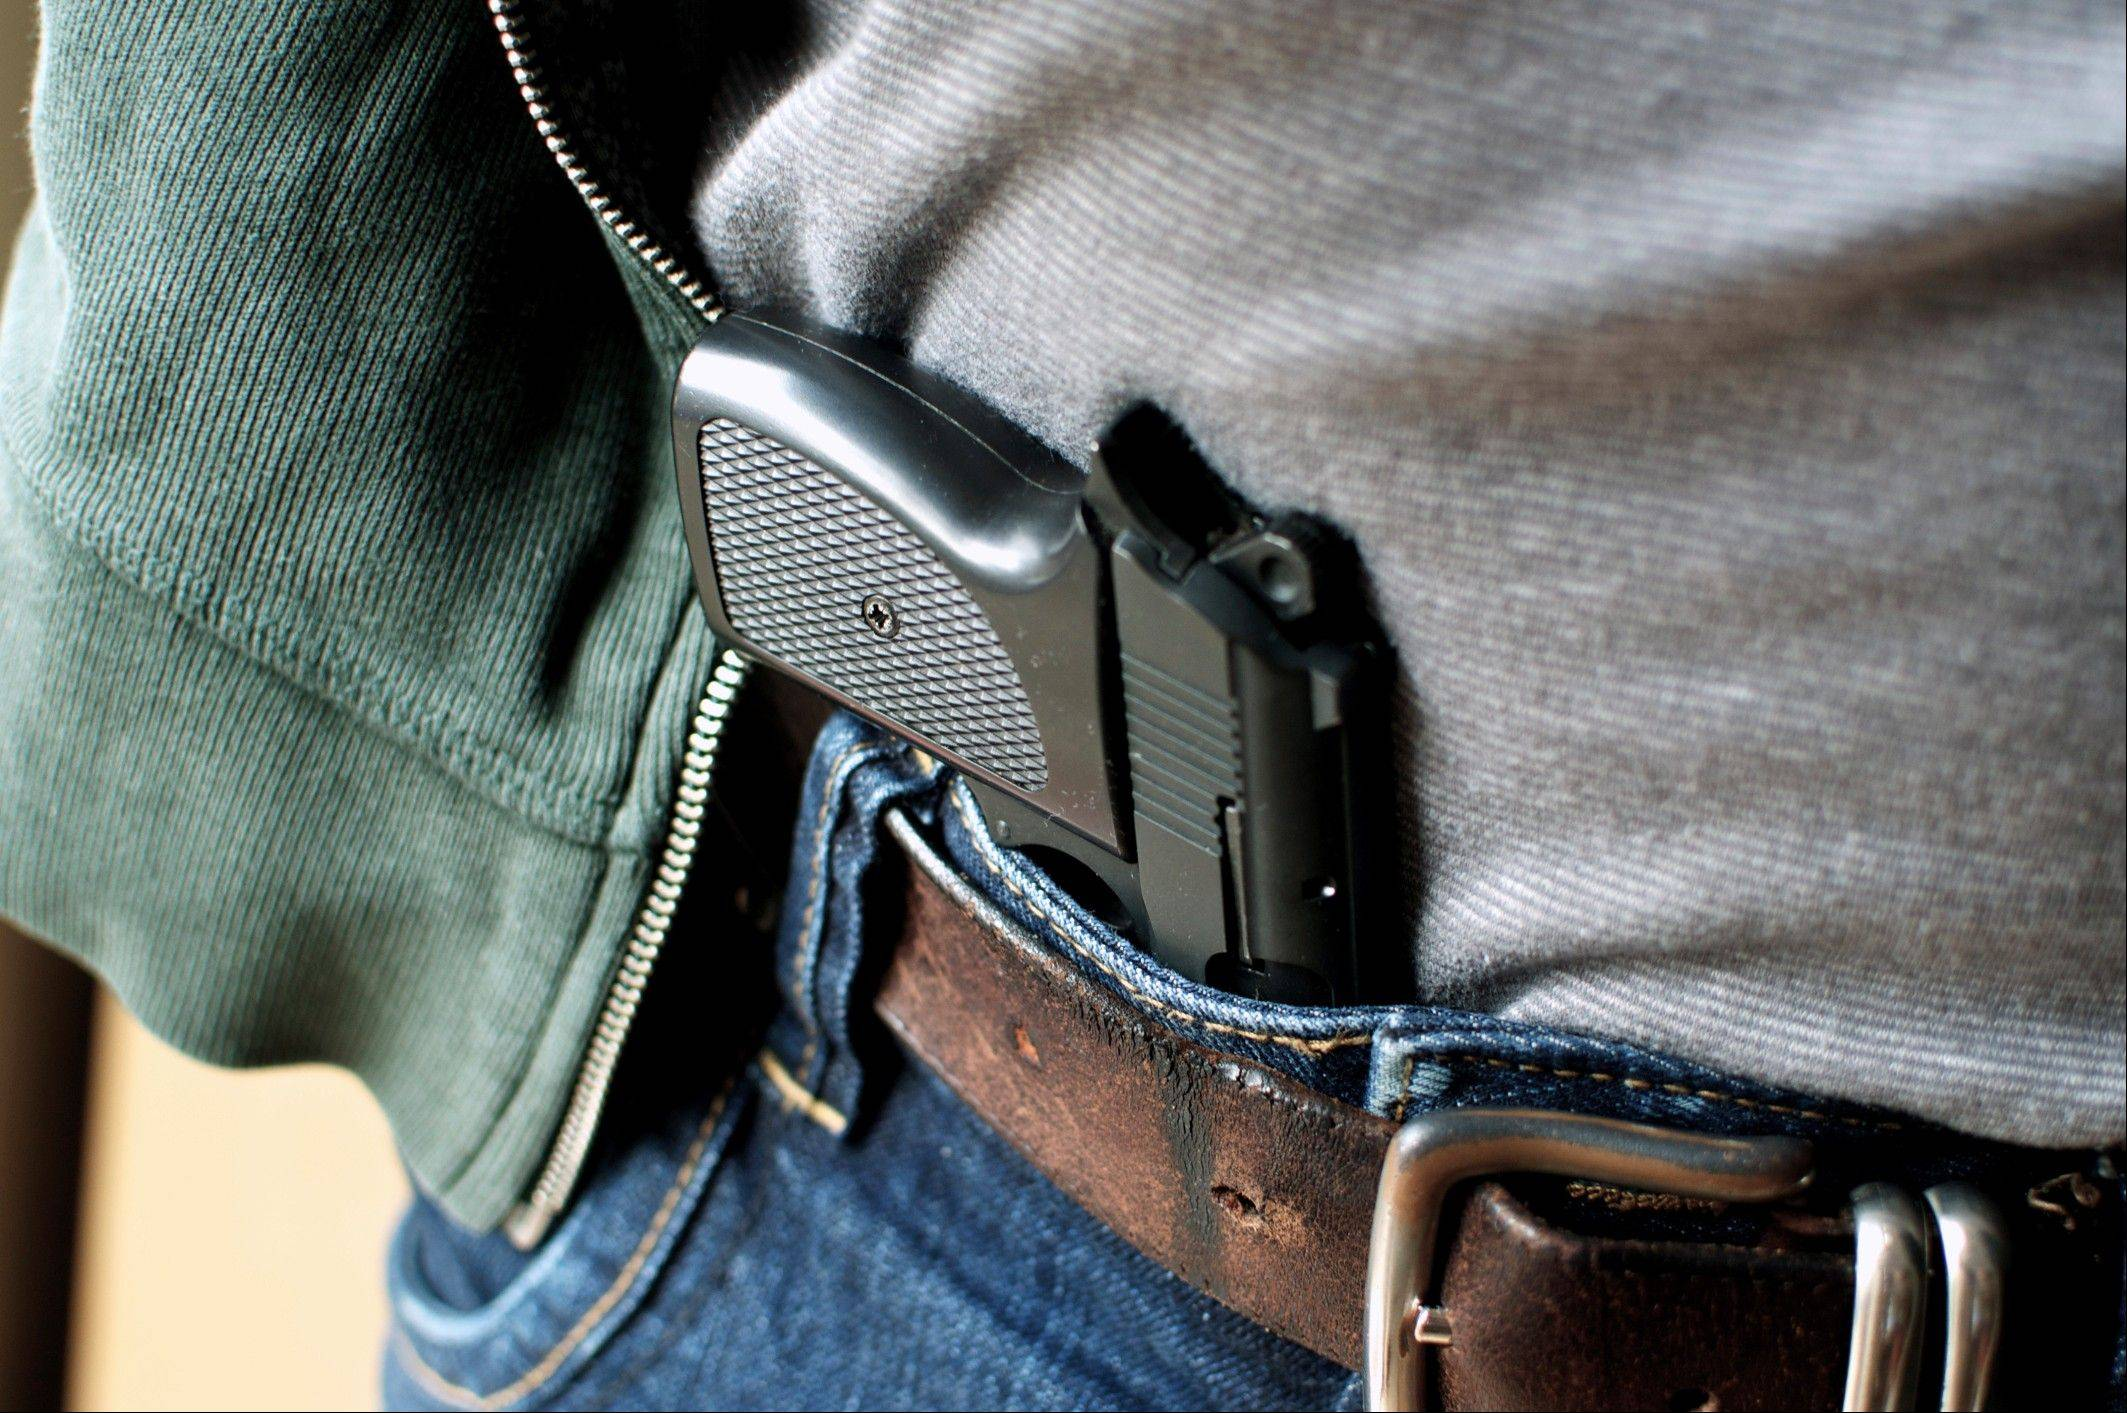 The Illinois State Police expect 400,000 applications for concealed carry permits.